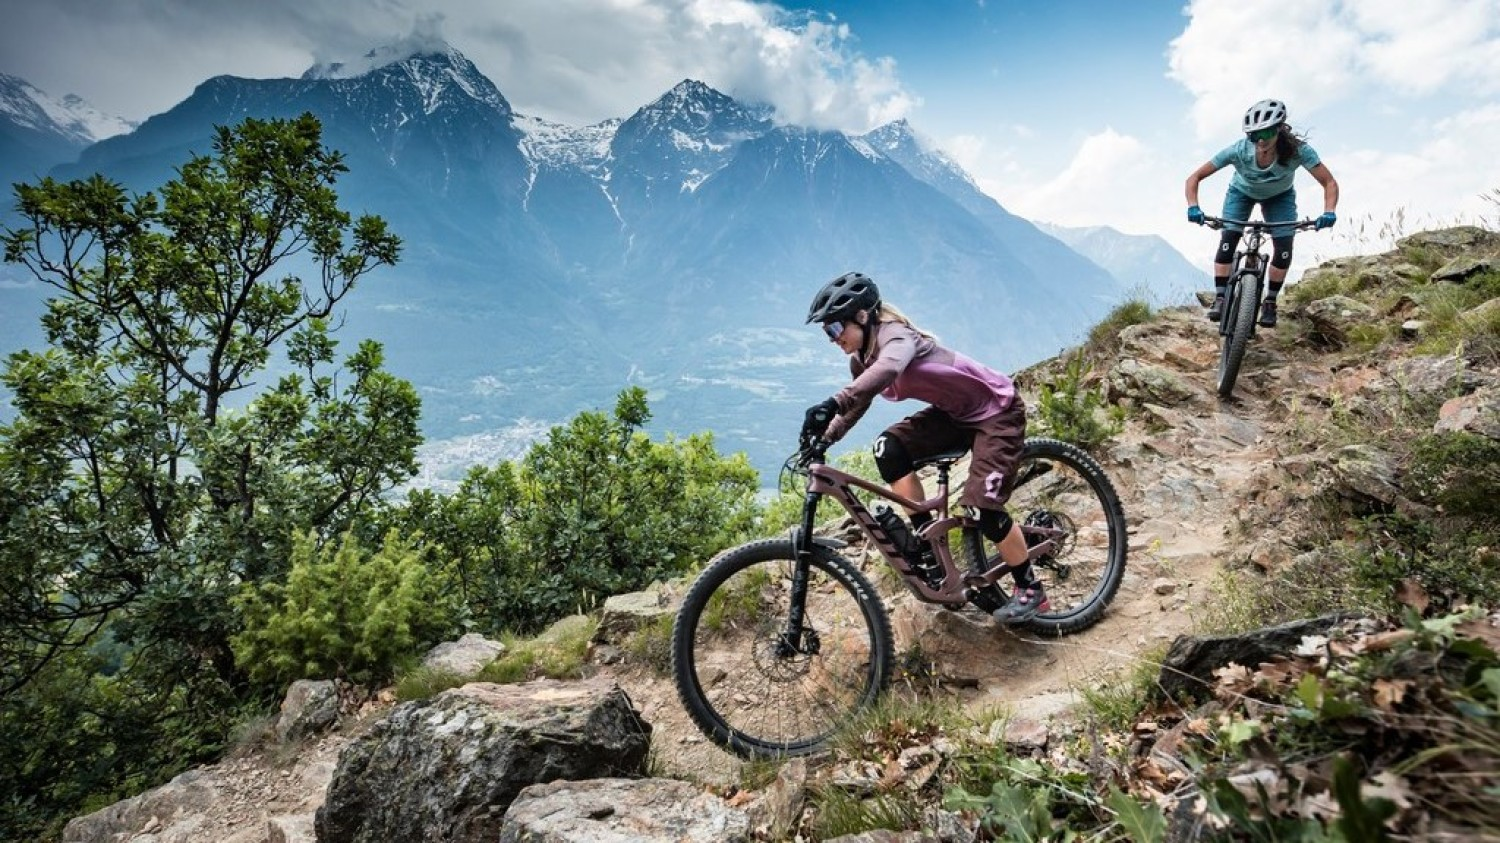 MTB in enduro mecca - the Ecrins foothills